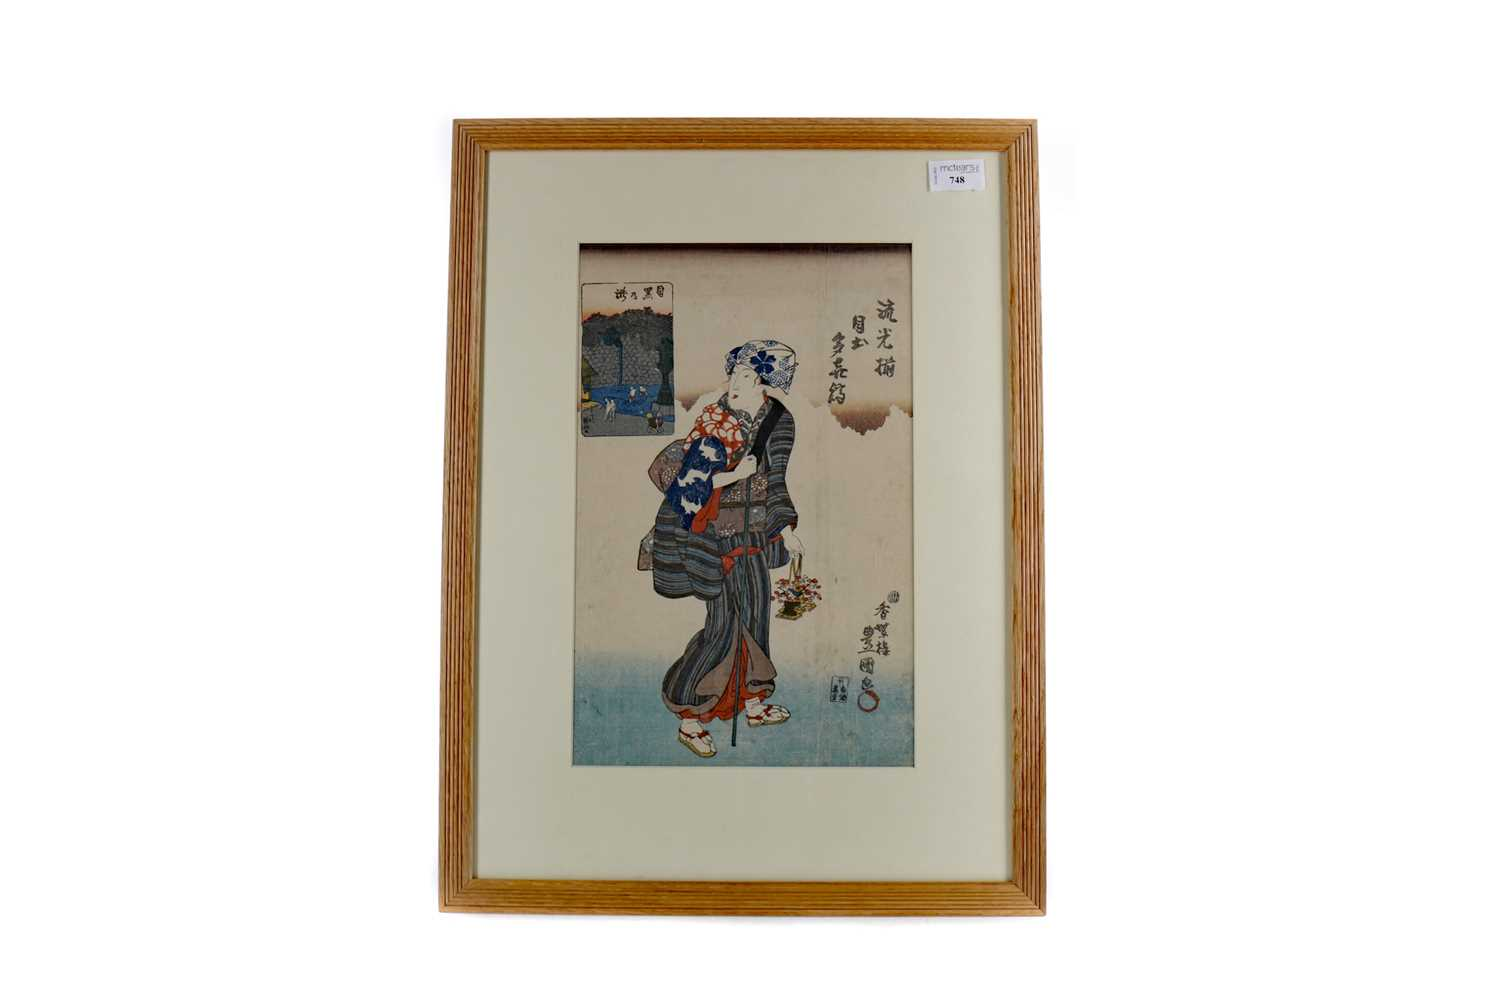 Lot 748 - A JAPANESE WOODBLOCK PRINT